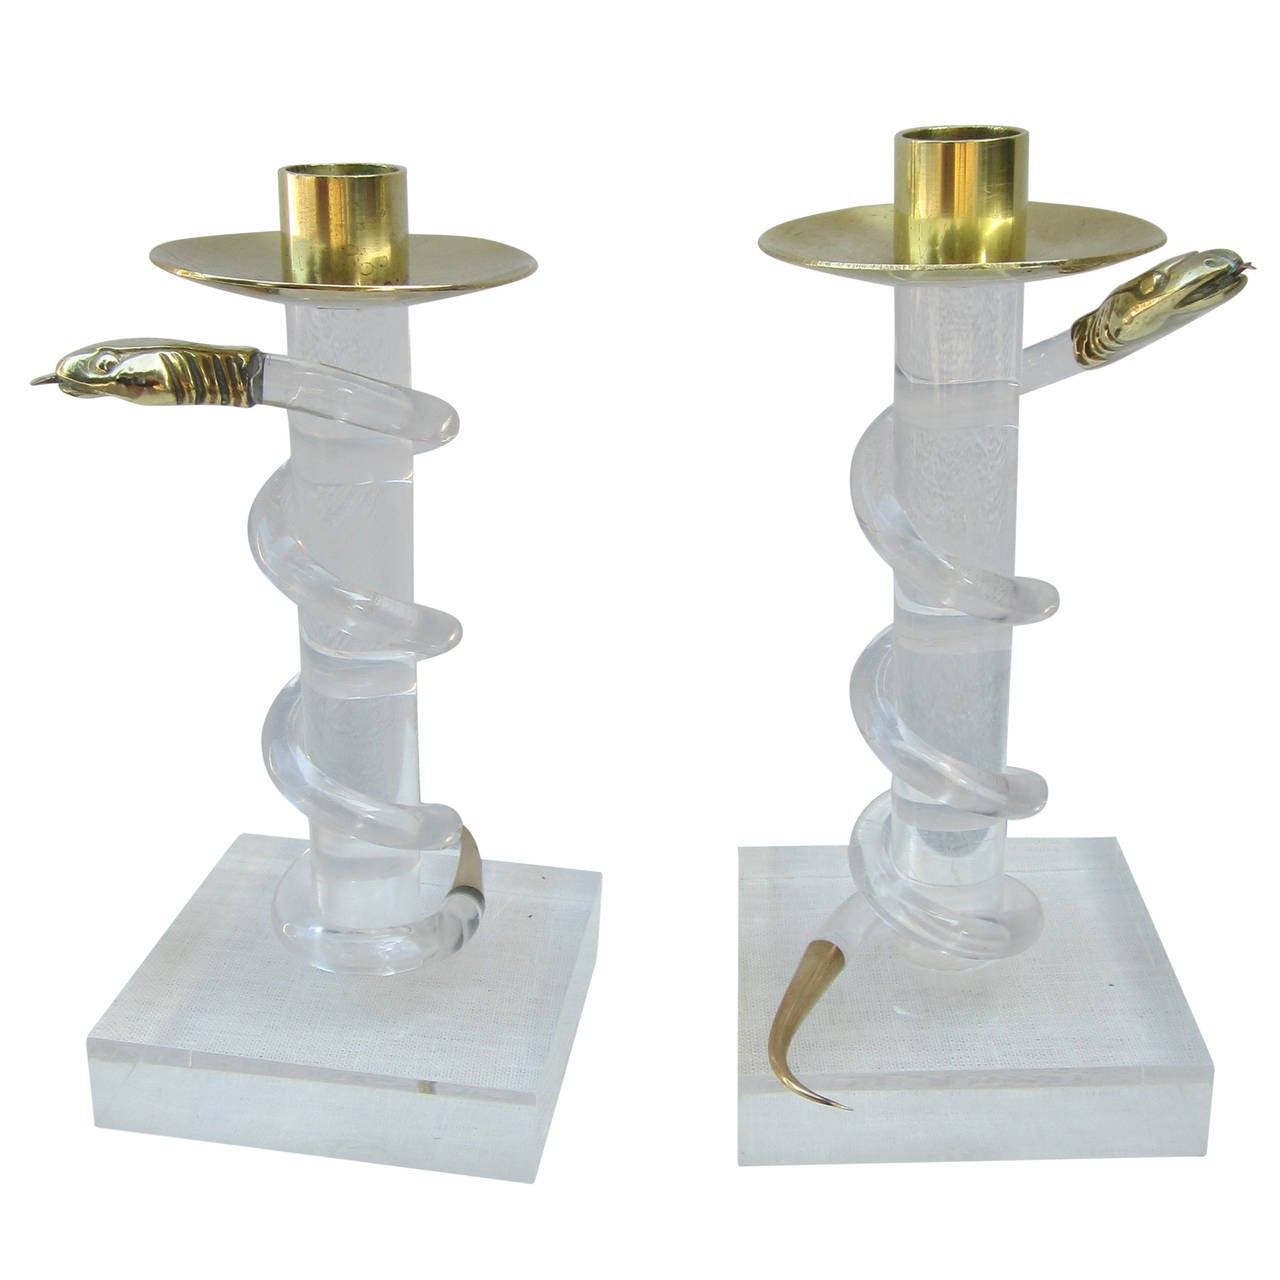 Pair of Brass and Lucite Candlesticks by Allesandro Albrizzi